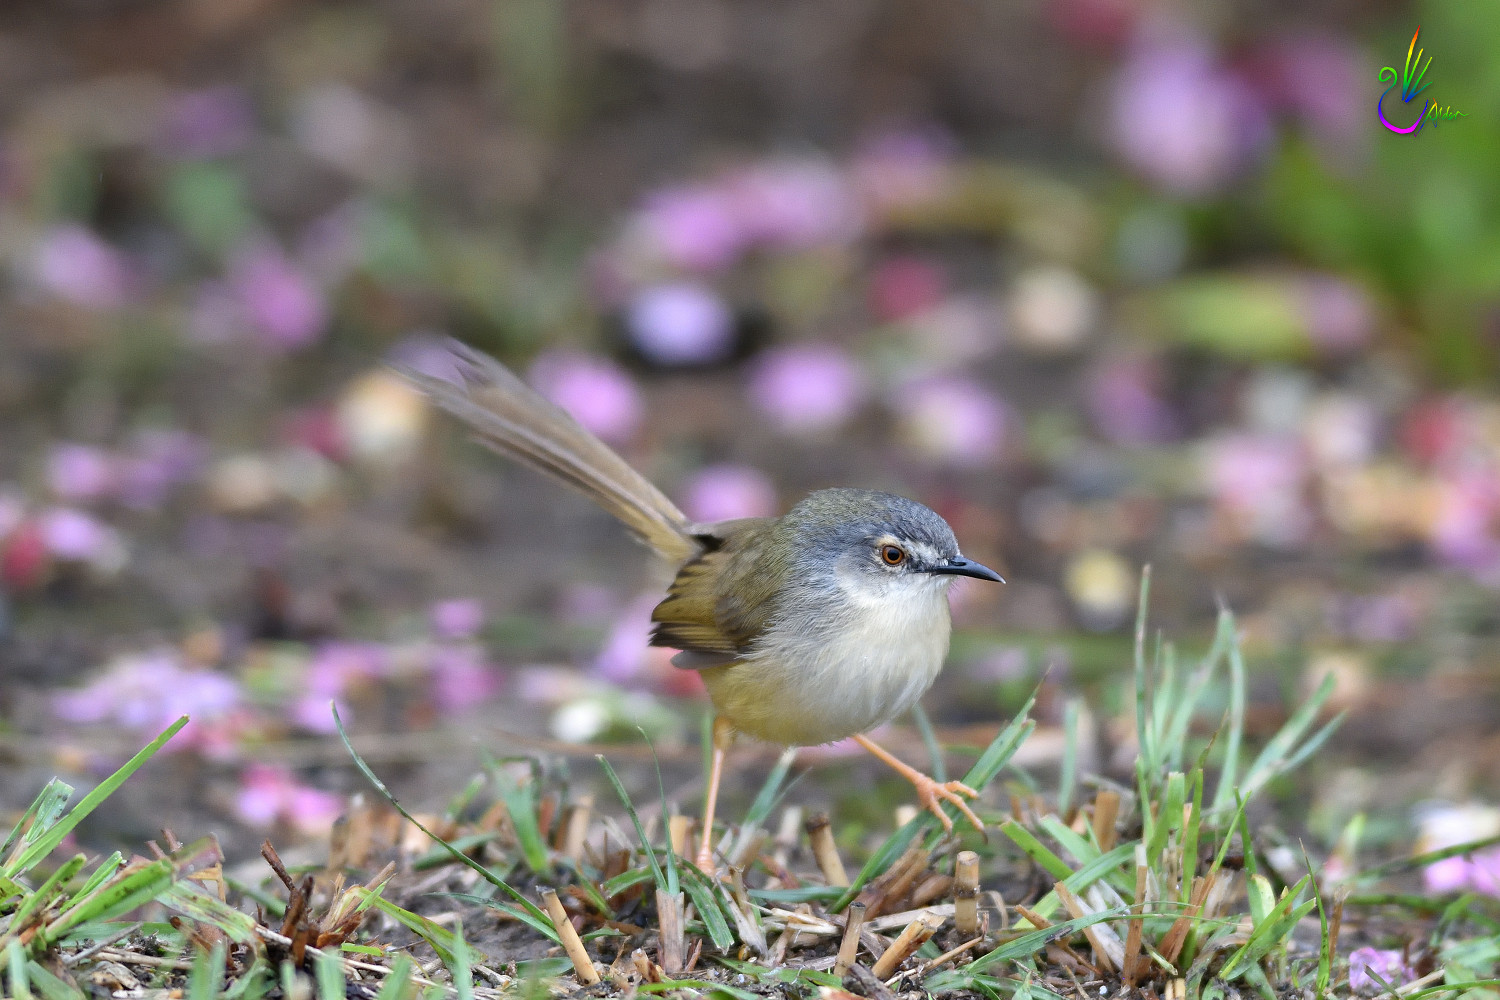 Yellow-bellied_Prinia_7337